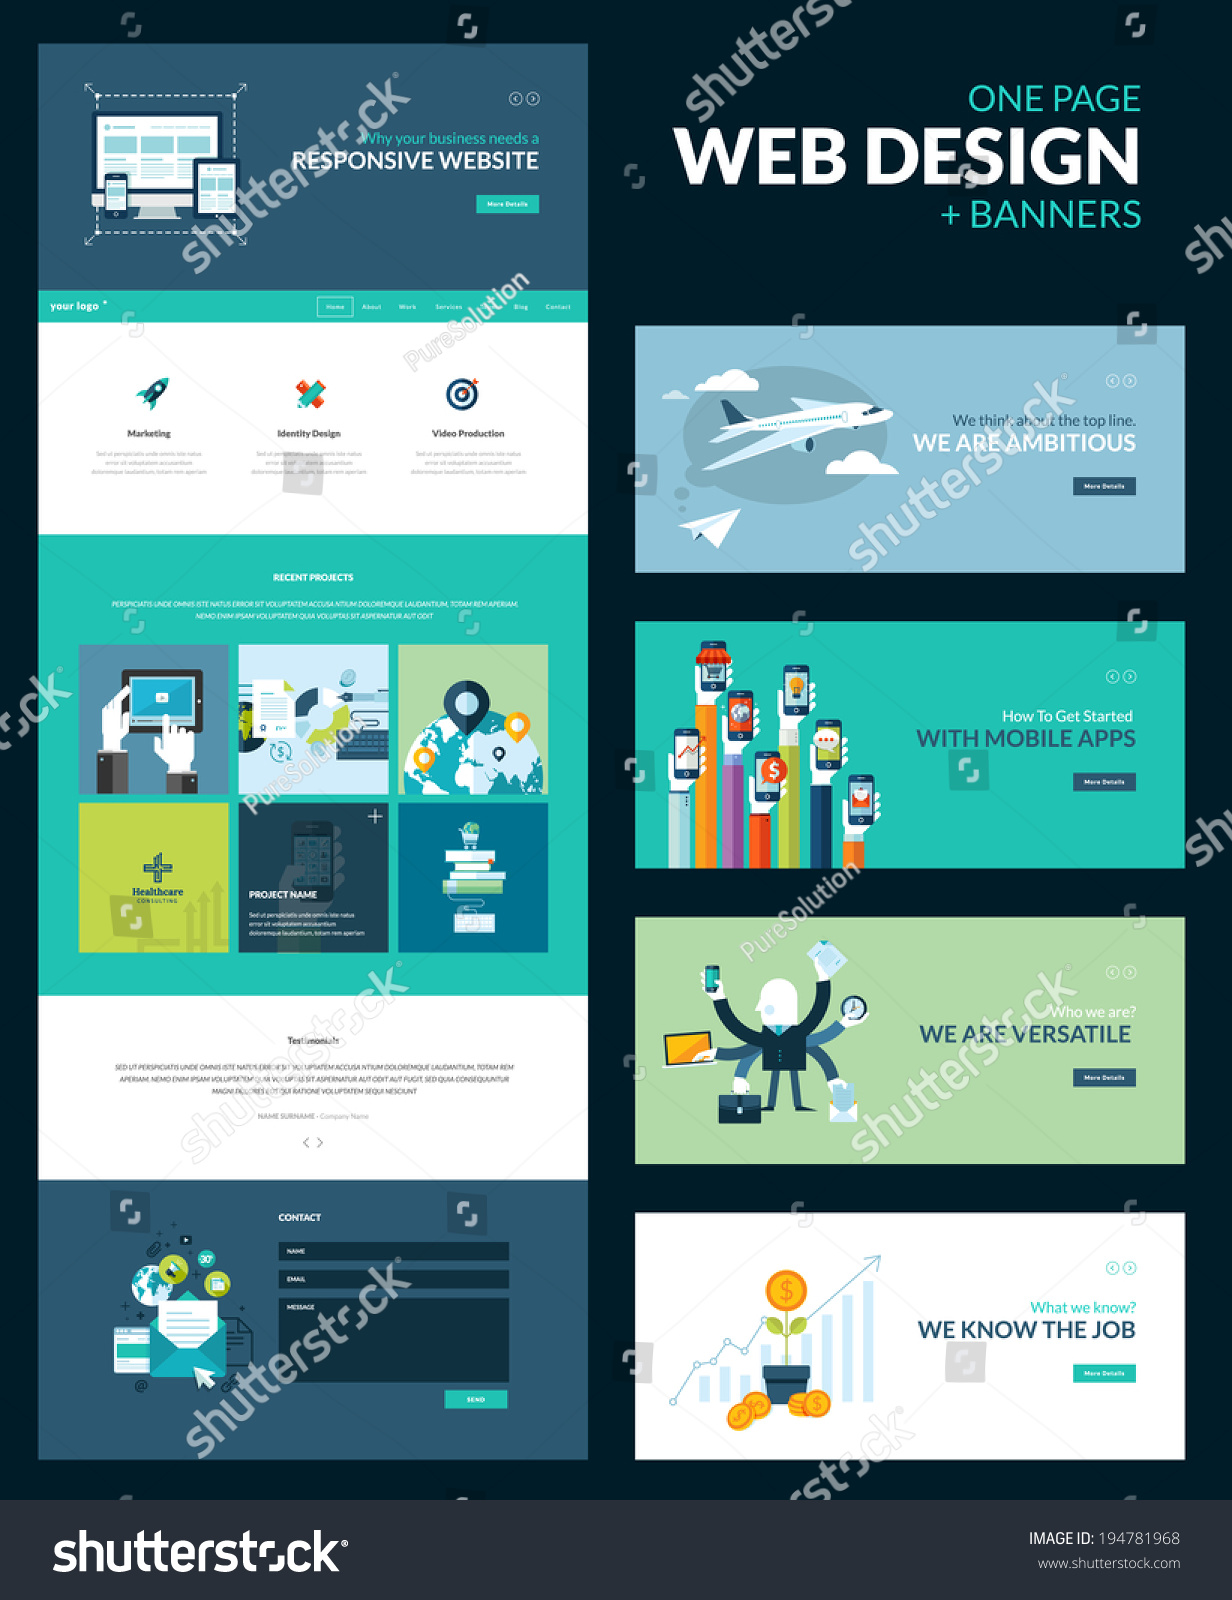 Cute 2 Page Resume Template Word Huge 2014 Sample Resume Templates Round 2015 Calendar Template 2015 Printable Calendar Template Youthful 3d Character Modeler Resume Soft3d Powerpoint Presentation Templates One Page Website Design Template All Stock Vector 194781968 ..